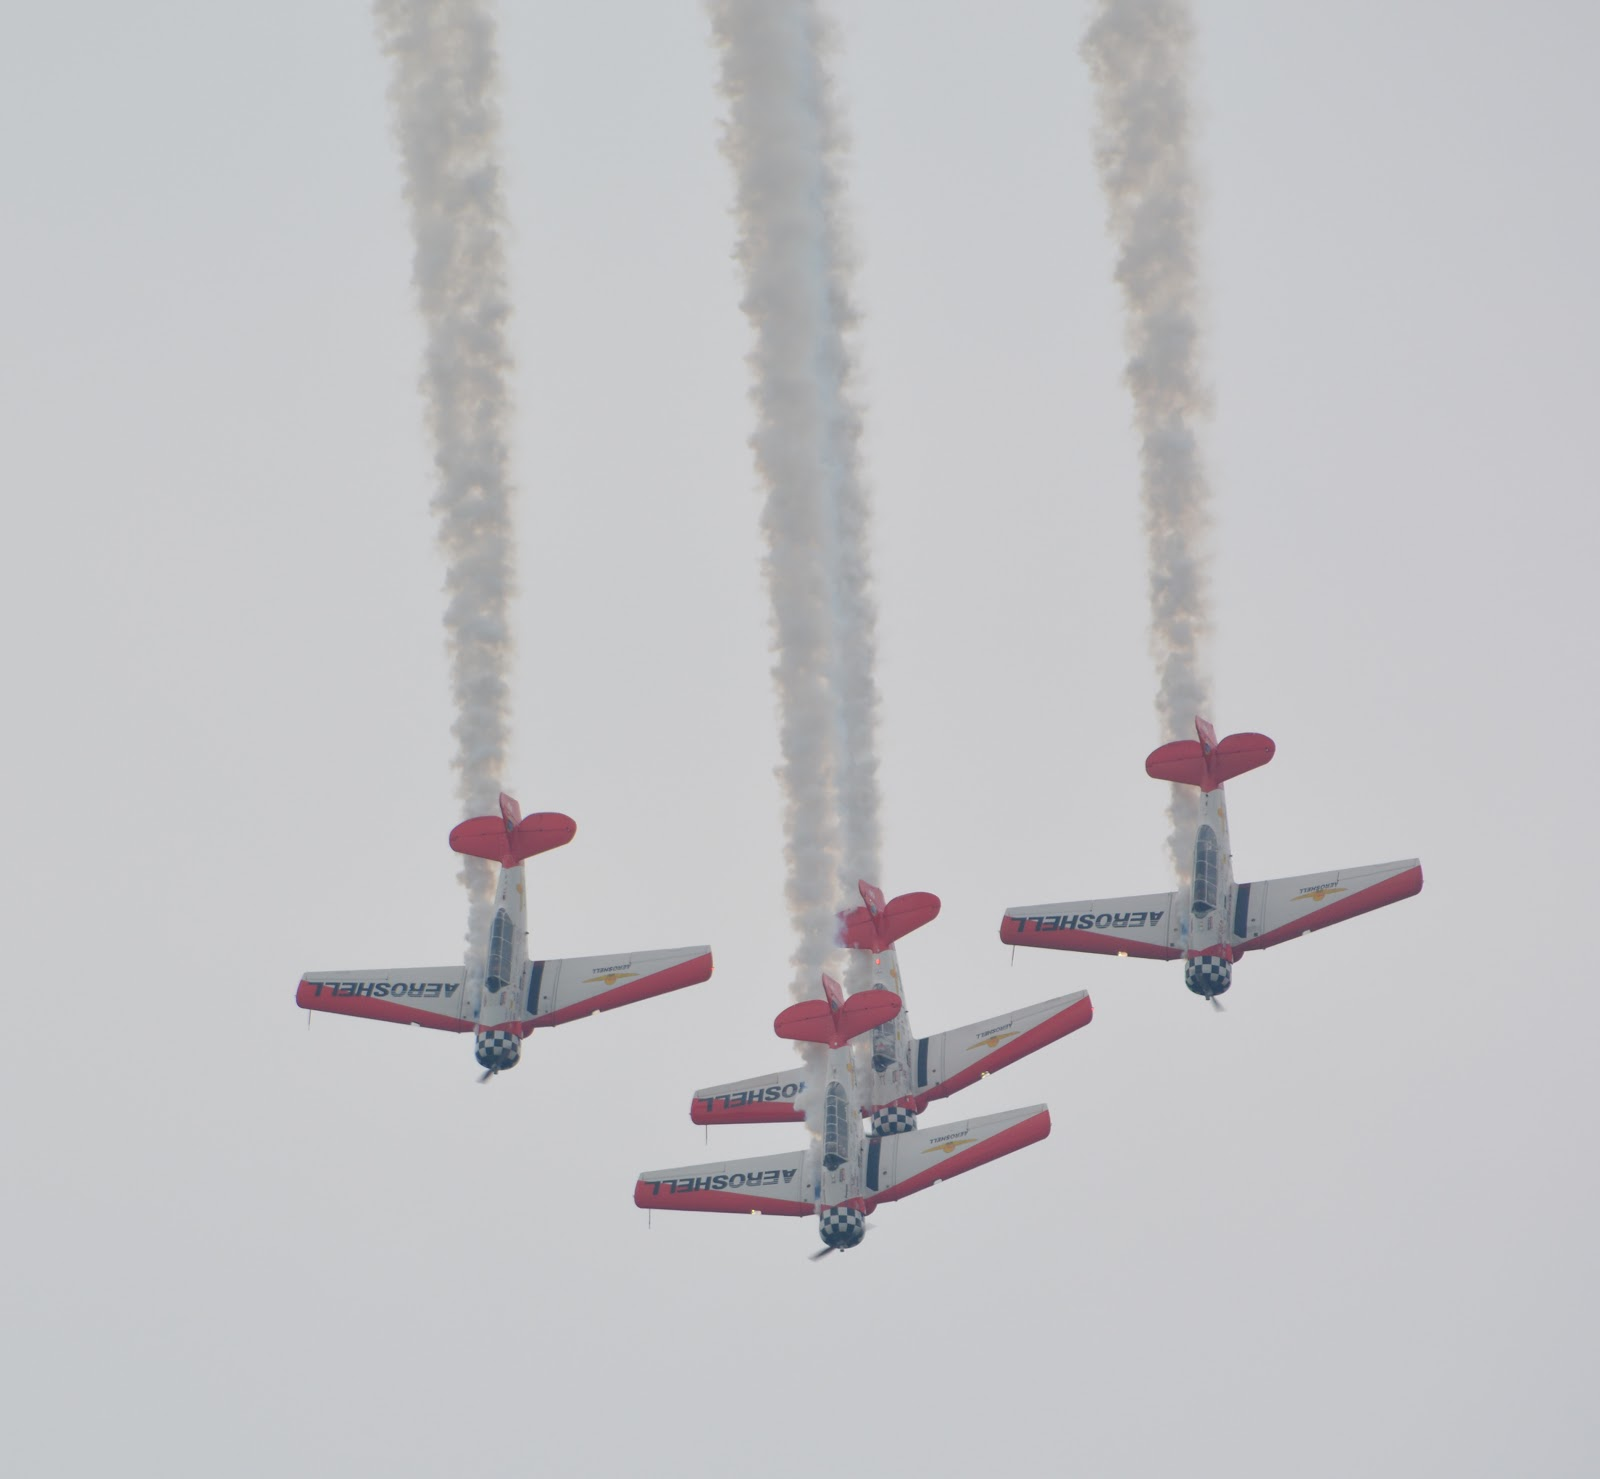 cozy birdhouse | dayton air show 2014, aeroshell formation aerobatic team